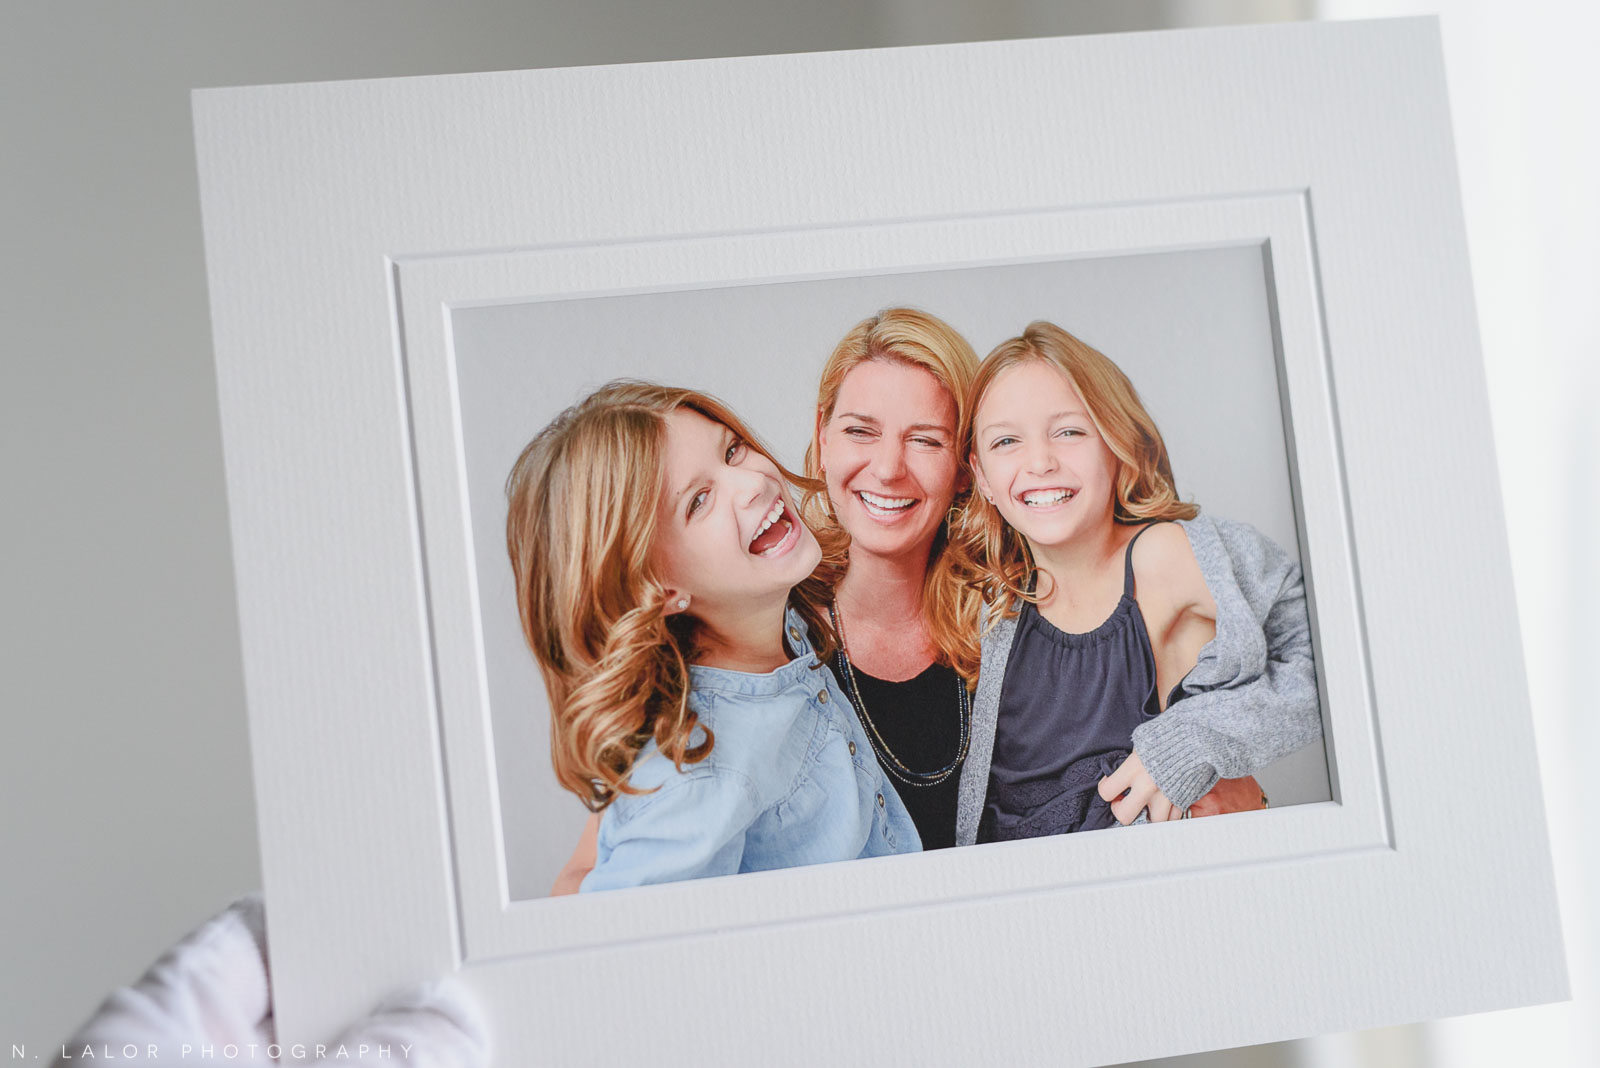 Mom with her two girls. Portrait by N. Lalor Photography in Greenwich, Connecticut.